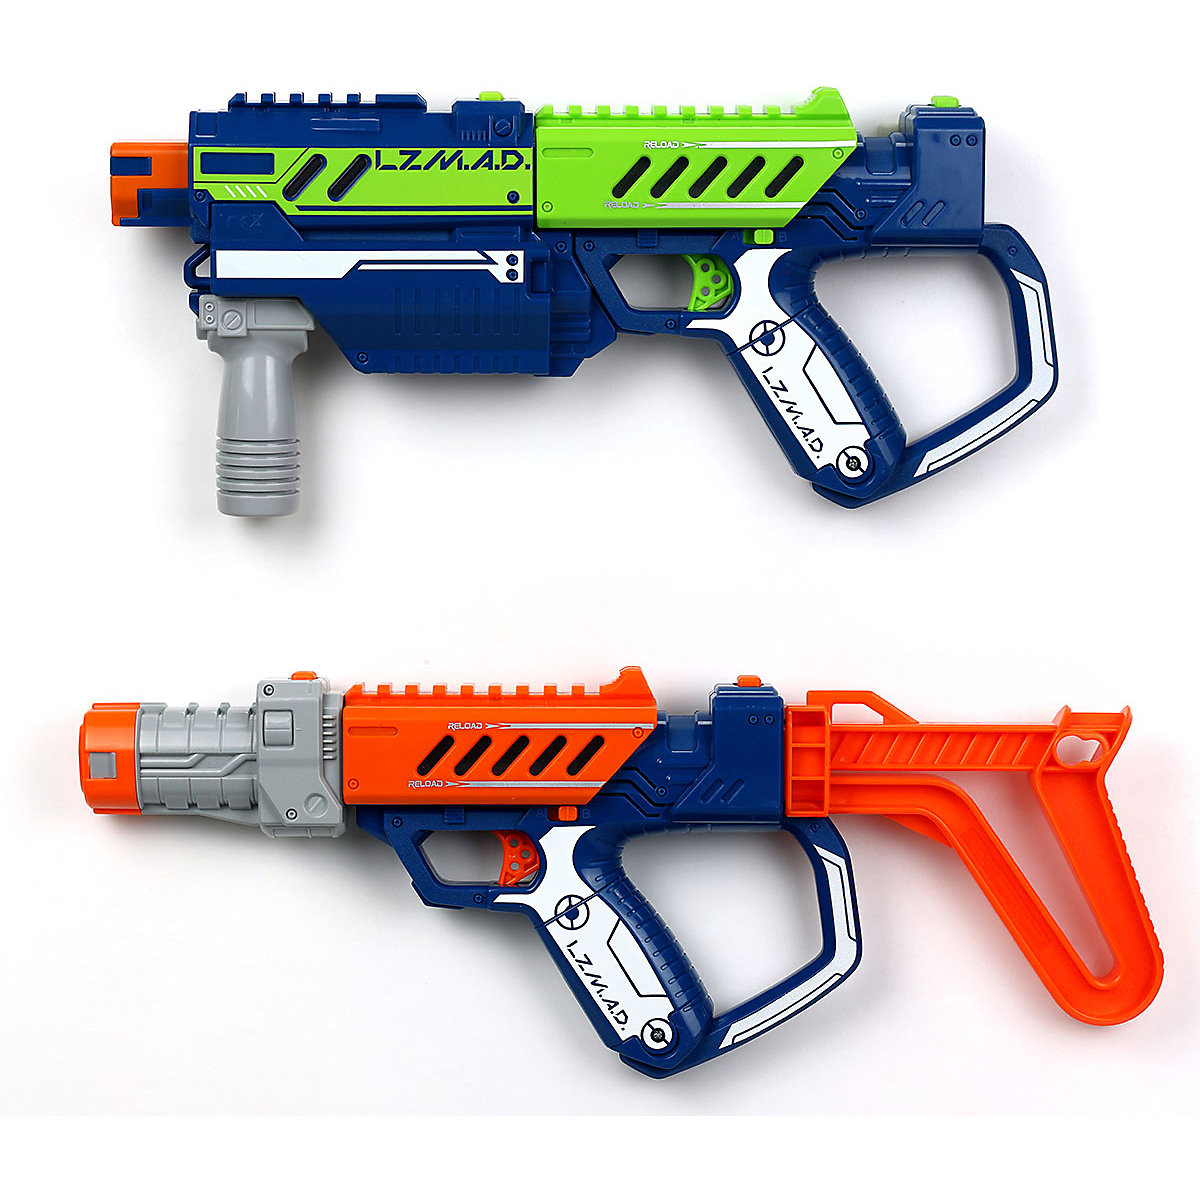 Silverlit Toy Guns 8445411 Gun Weapon Toys Games Pneumatic Blaster Boy Orbiz Revolver Outdoor Fun Sports